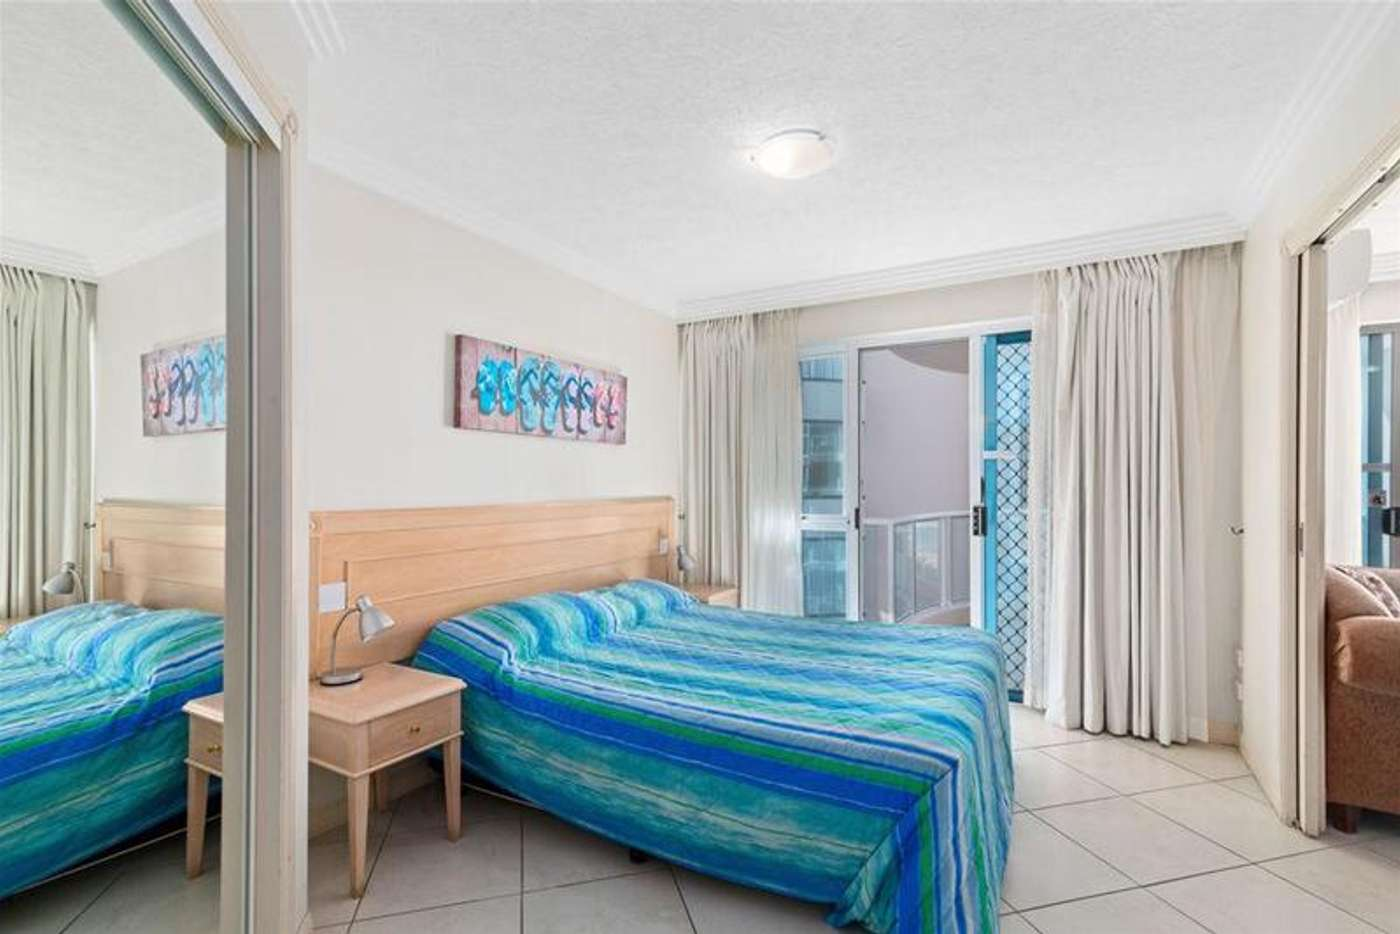 Fifth view of Homely apartment listing, 402/1483 Gold Coast Highway, Palm Beach QLD 4221